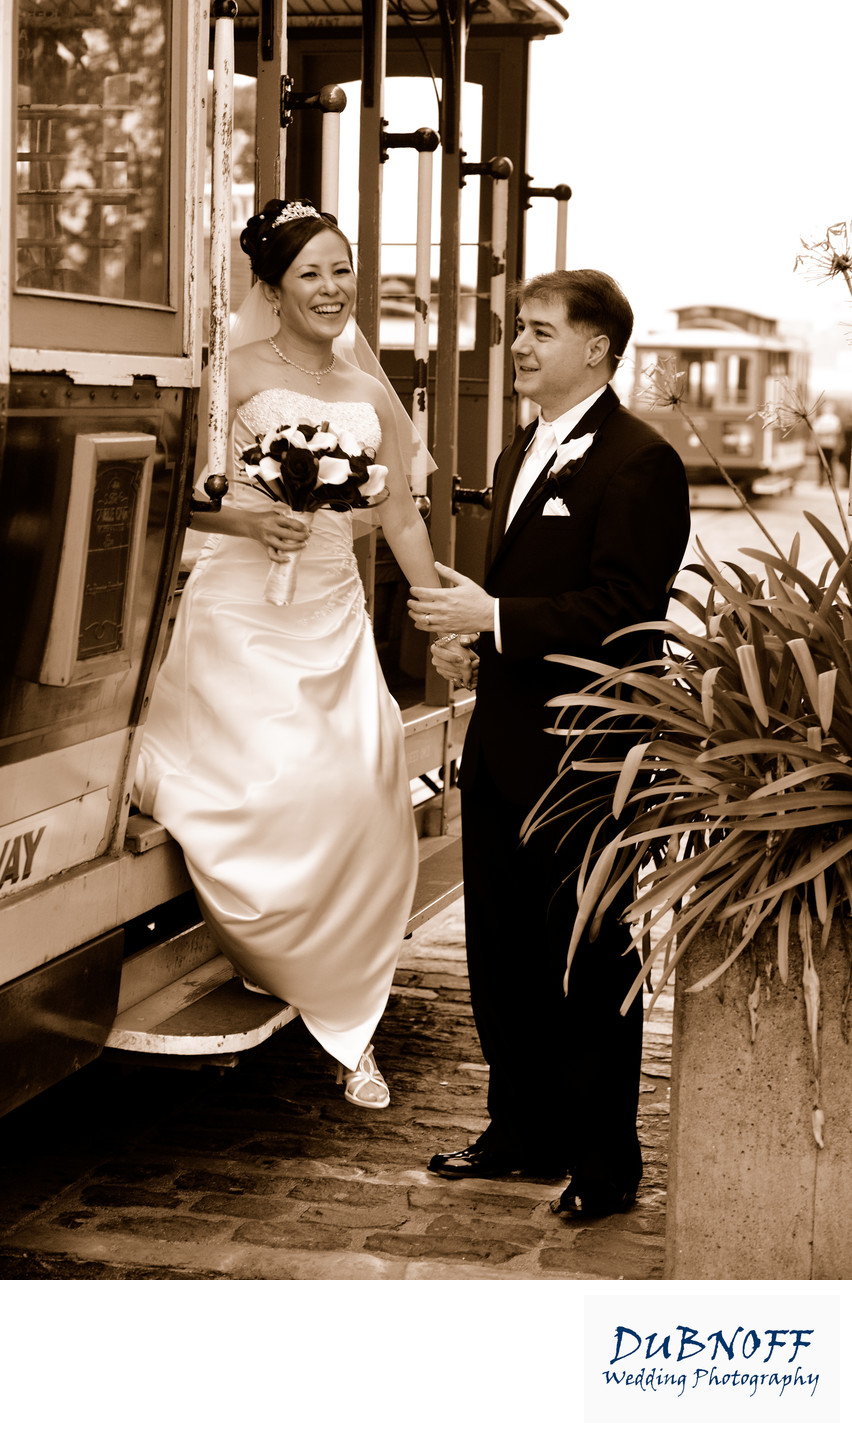 Newlywed Groom Assists Bride Stepping off a Cable  Car in Sepia Tone